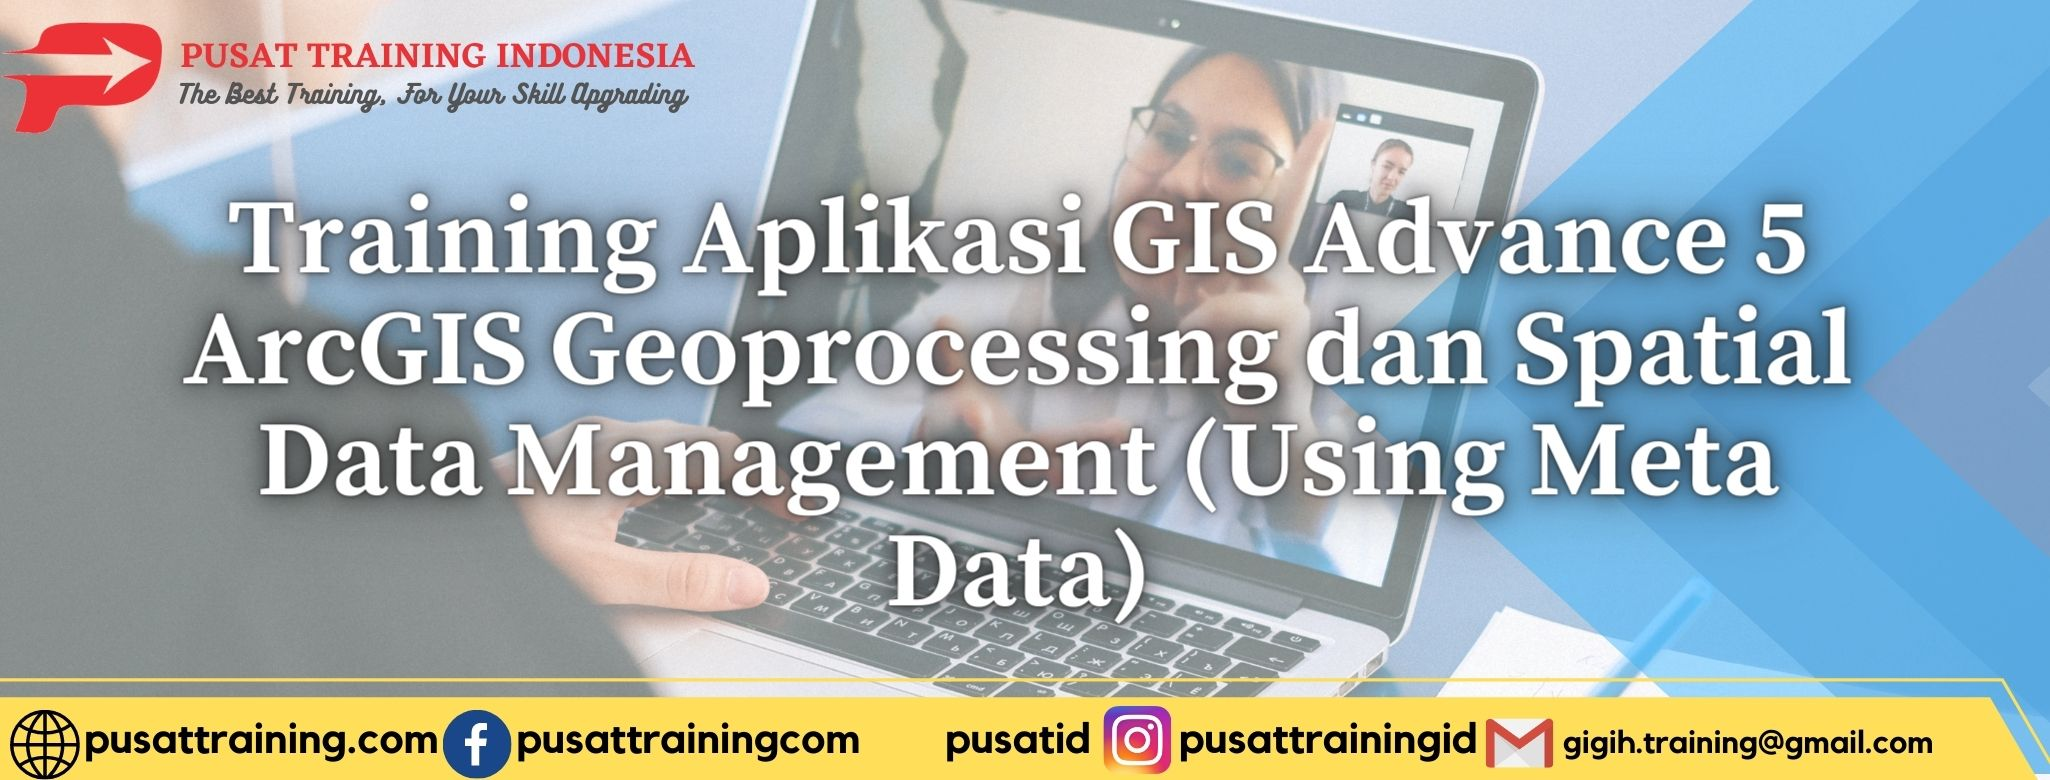 Training-Aplikasi-GIS-Advance-5-ArcGIS-Geoprocessing-dan-Spatial-Data-Management-Using-Meta-Data